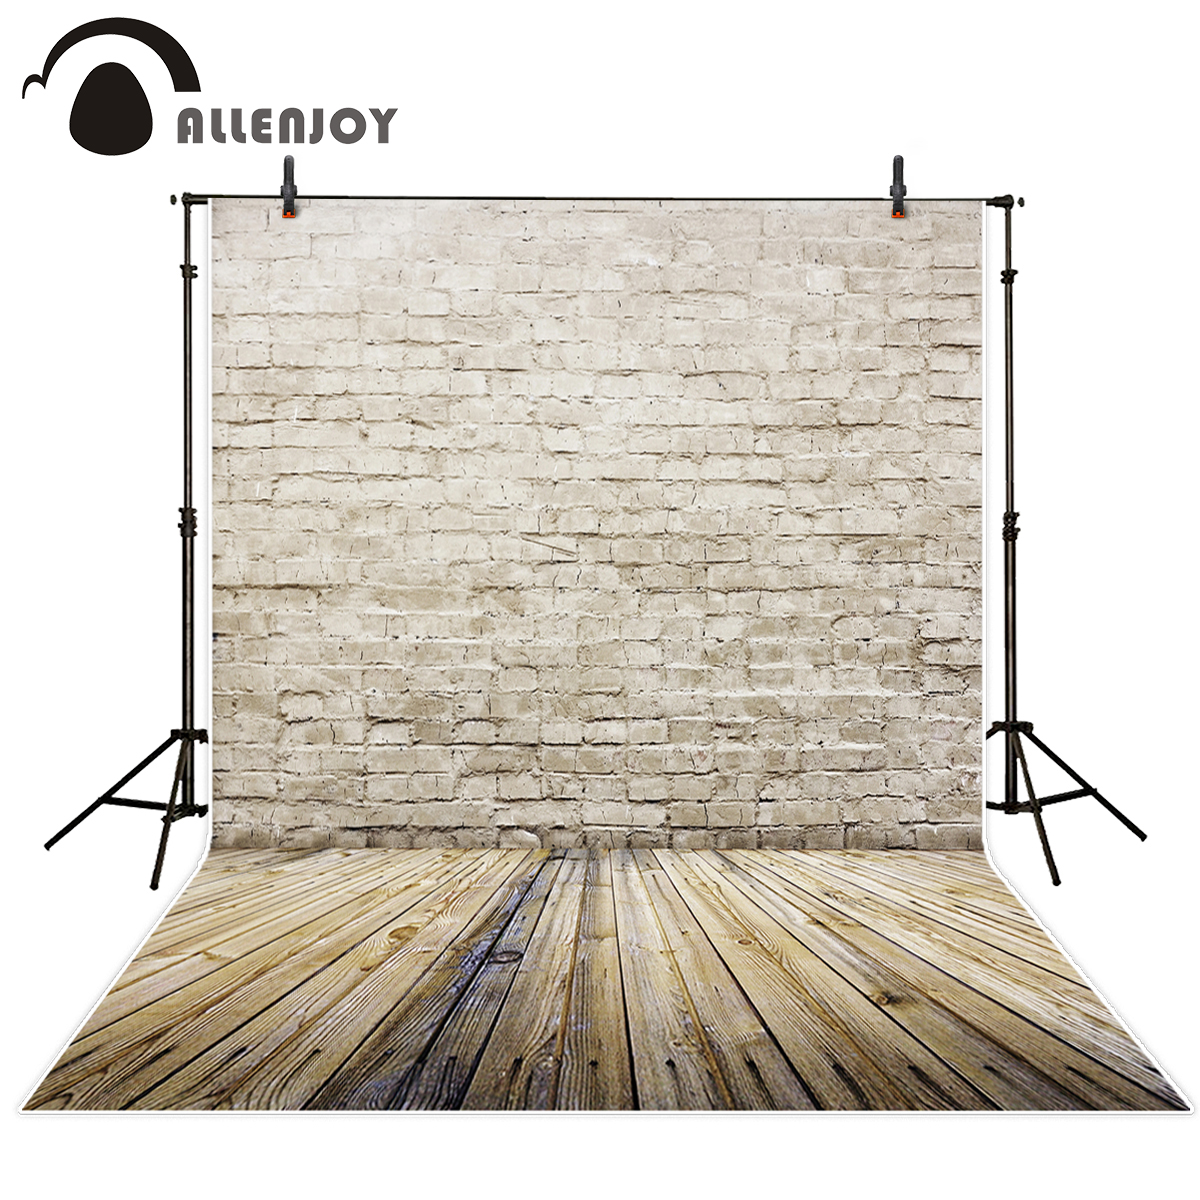 Allenjoy Brick wall Wood Gray distressed vintage Brick wall Photographic background vinyl photography backdrops photo studio 7x5ft vinyl photography background white brick wall for studio photo props photographic backdrops cloth 2 1mx1 5m